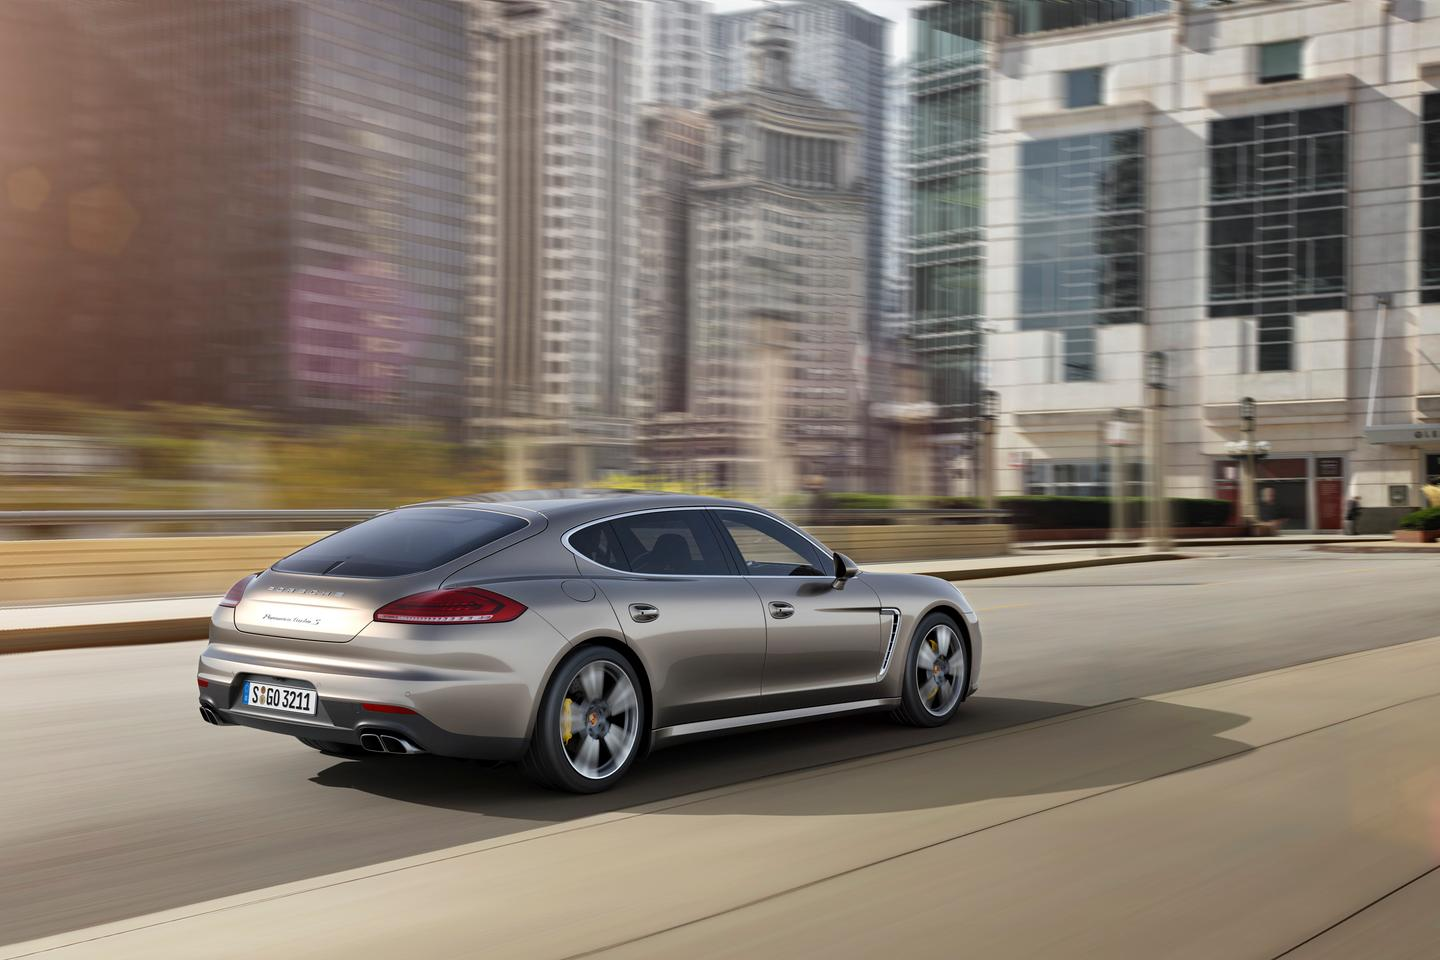 The all-new Panamera Turbo S